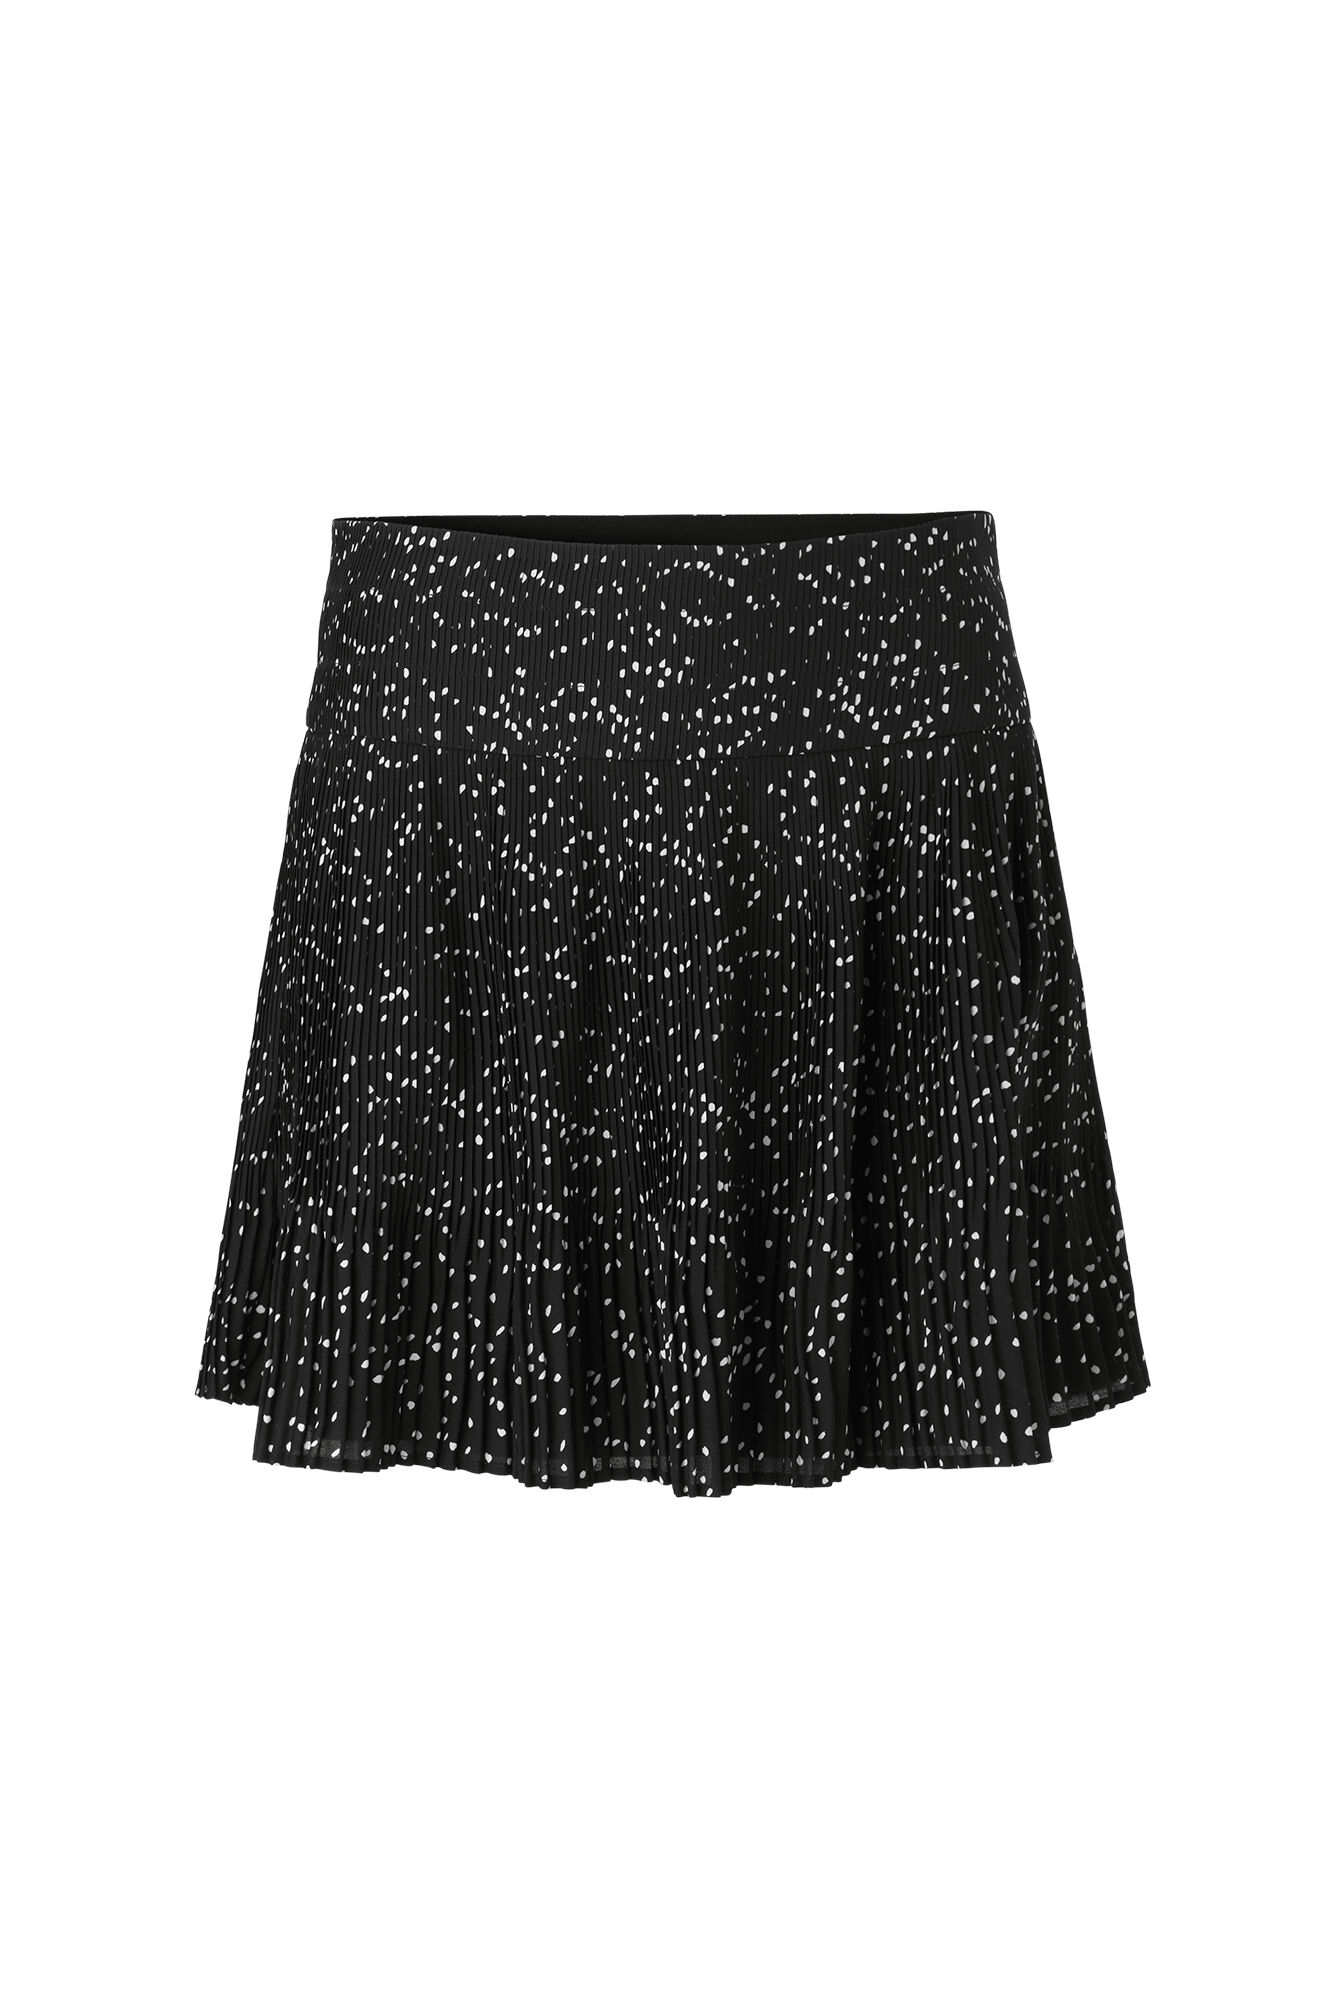 ENELLE SKIRT AOP 6465, WINDY DOTS AOP